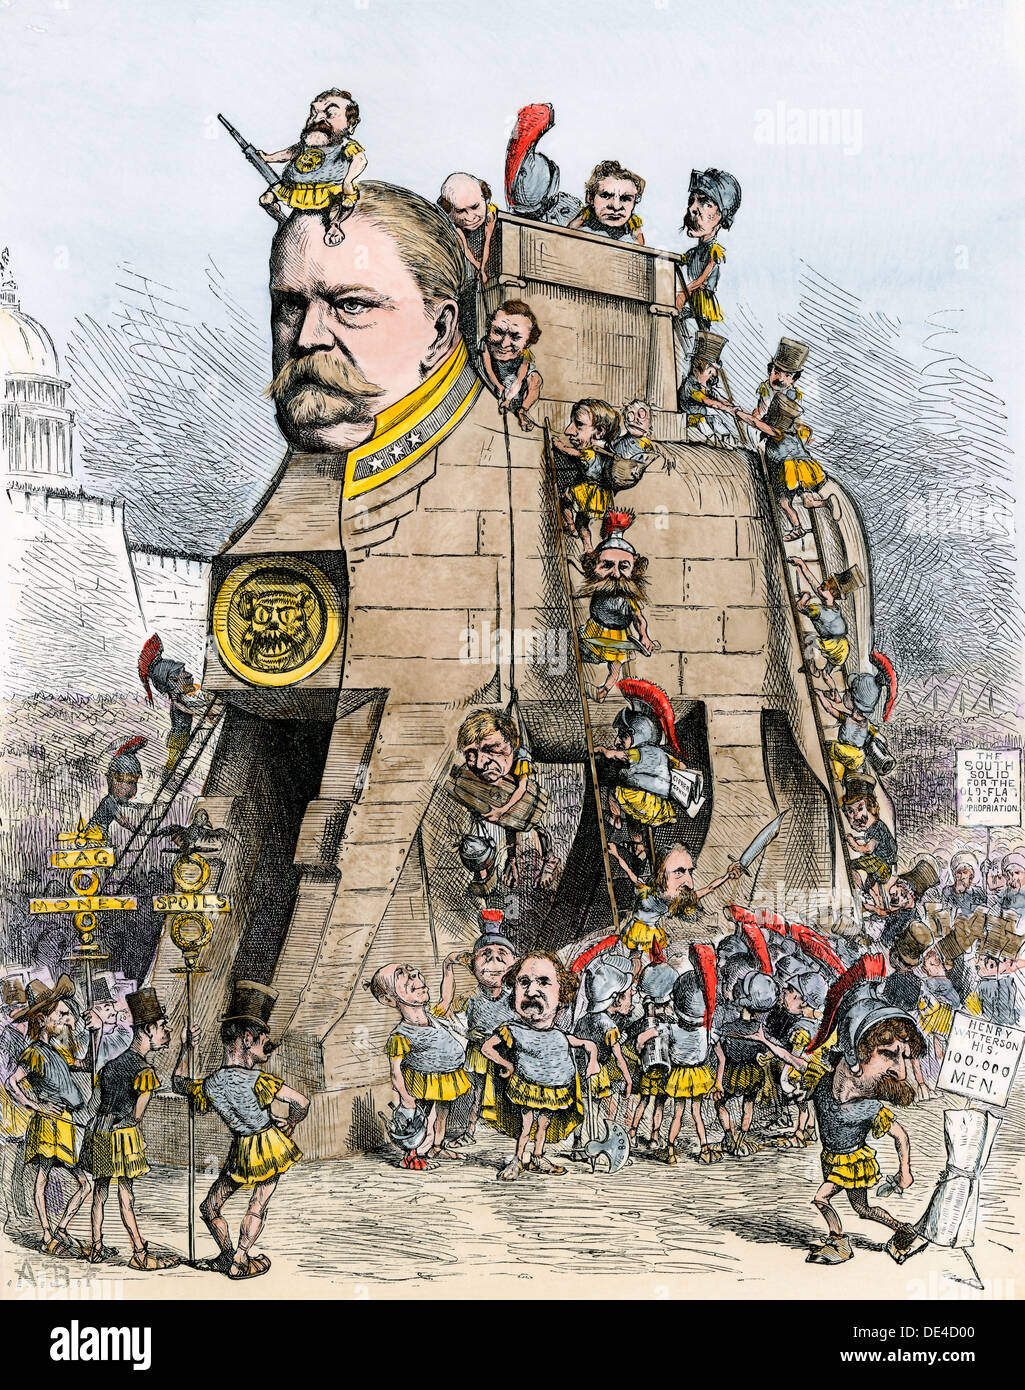 Winfield Scott Hancock cartooned as the Democratic Trojan Horse, election campaign of 1880. Hand-colored woodcut - Stock Image